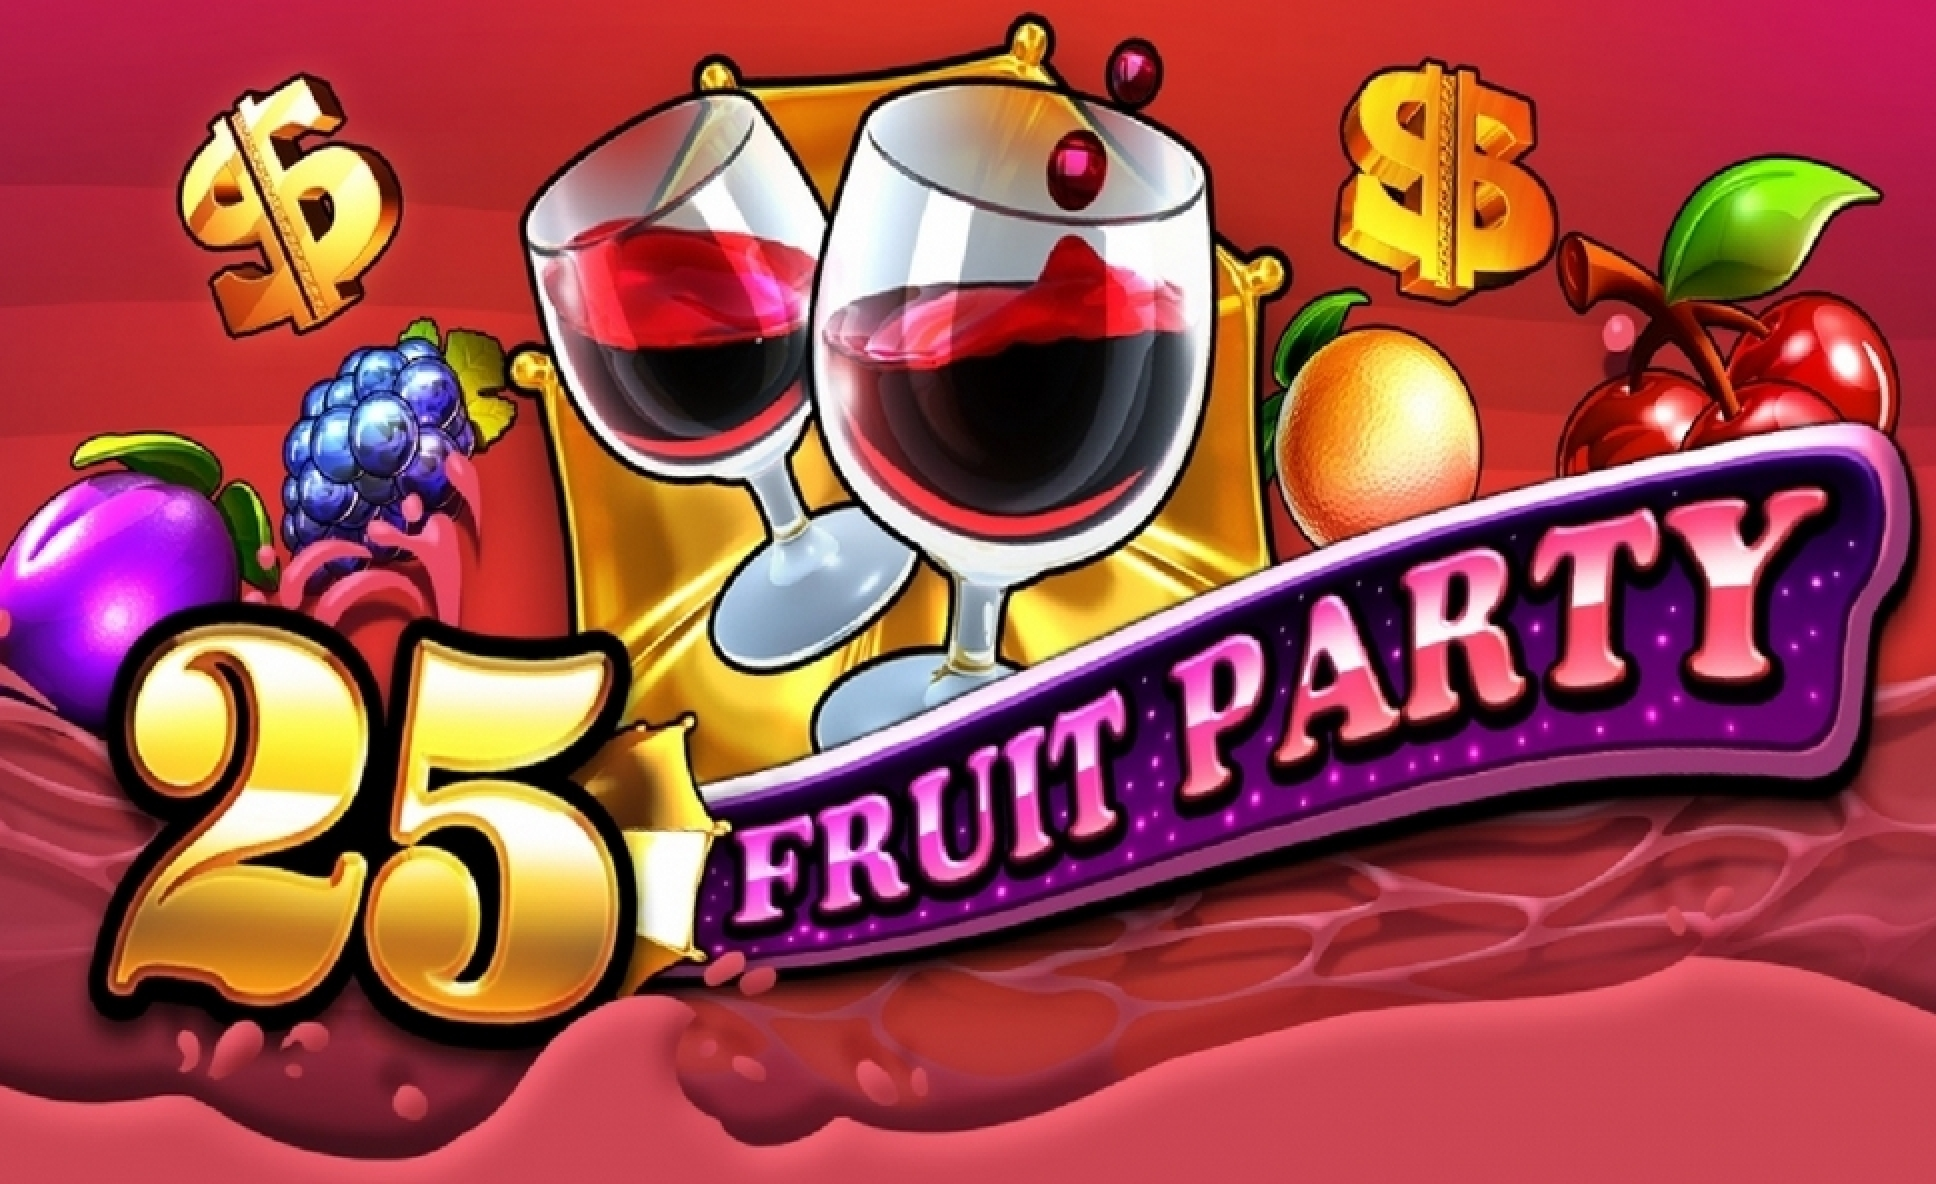 The 25 Fruit Party Online Slot Demo Game by FUGA Gaming